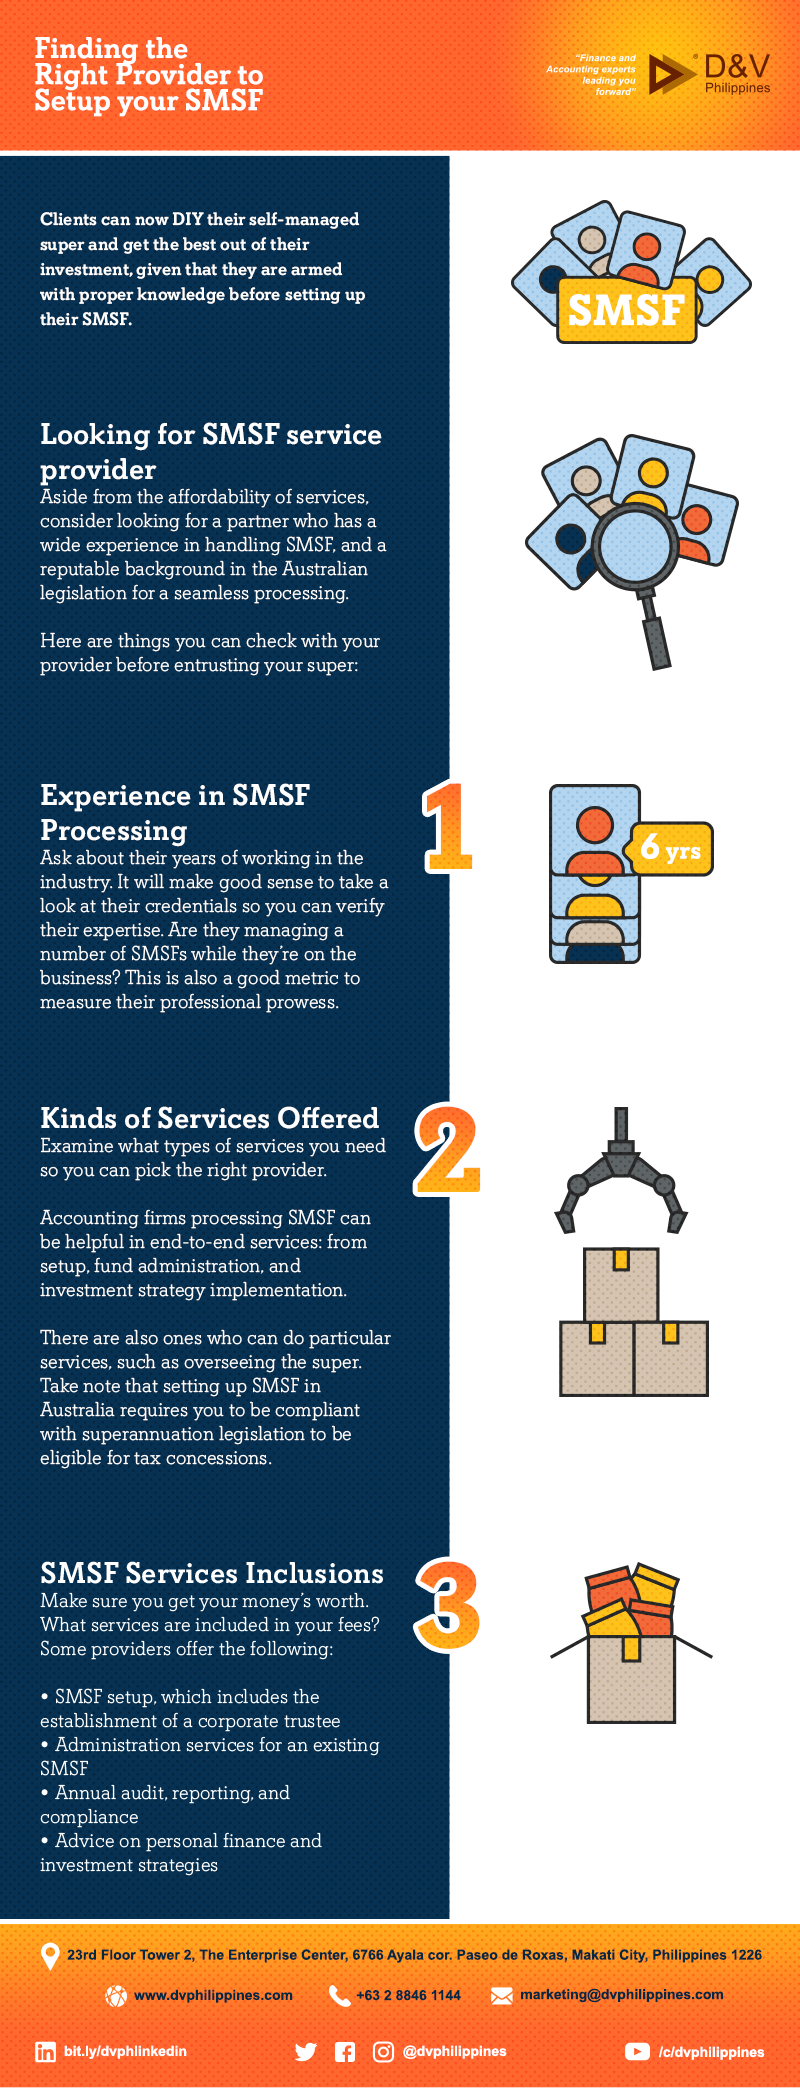 Infograpihcs_Finding-the-Right-Provider-to-Setup-your-SMSF_Main